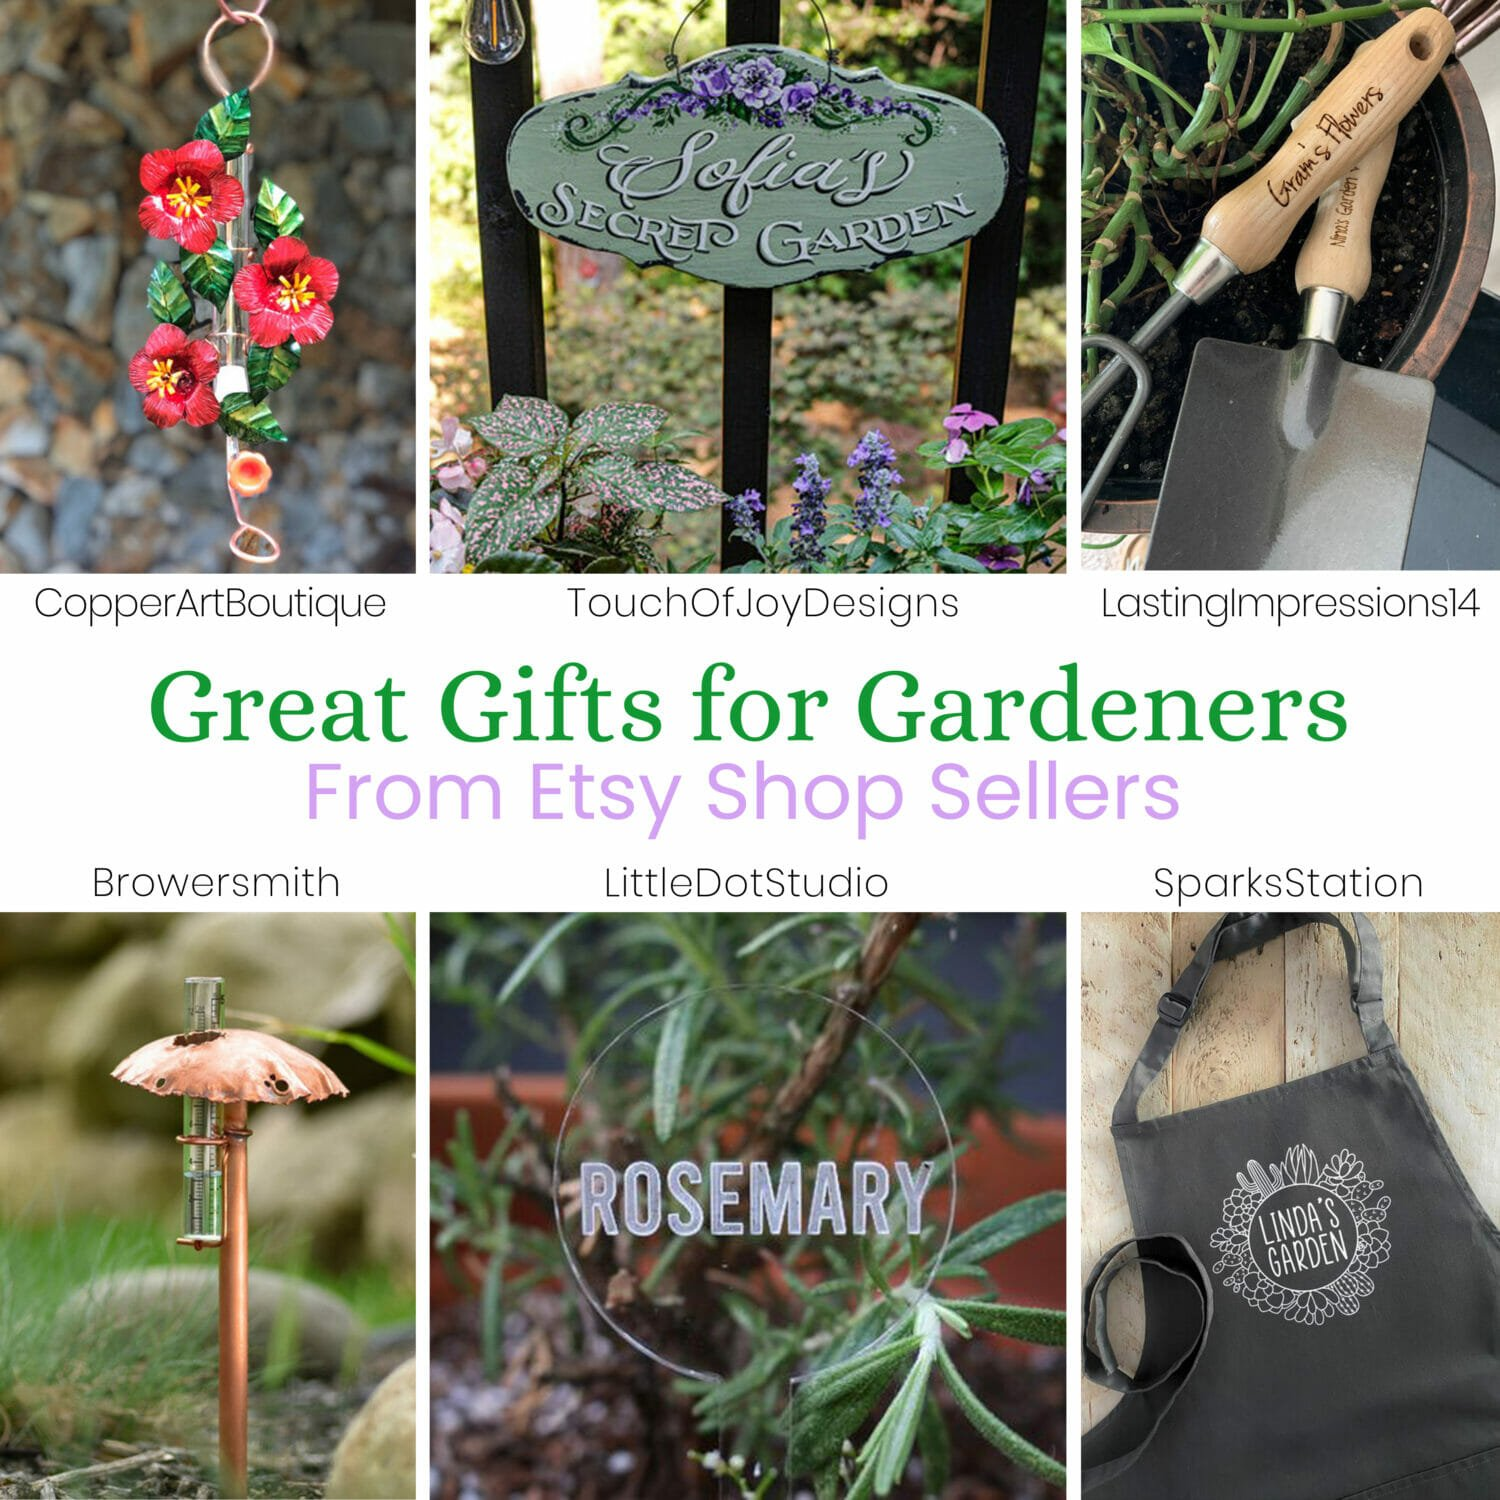 22 Great Gifts for Gardeners!